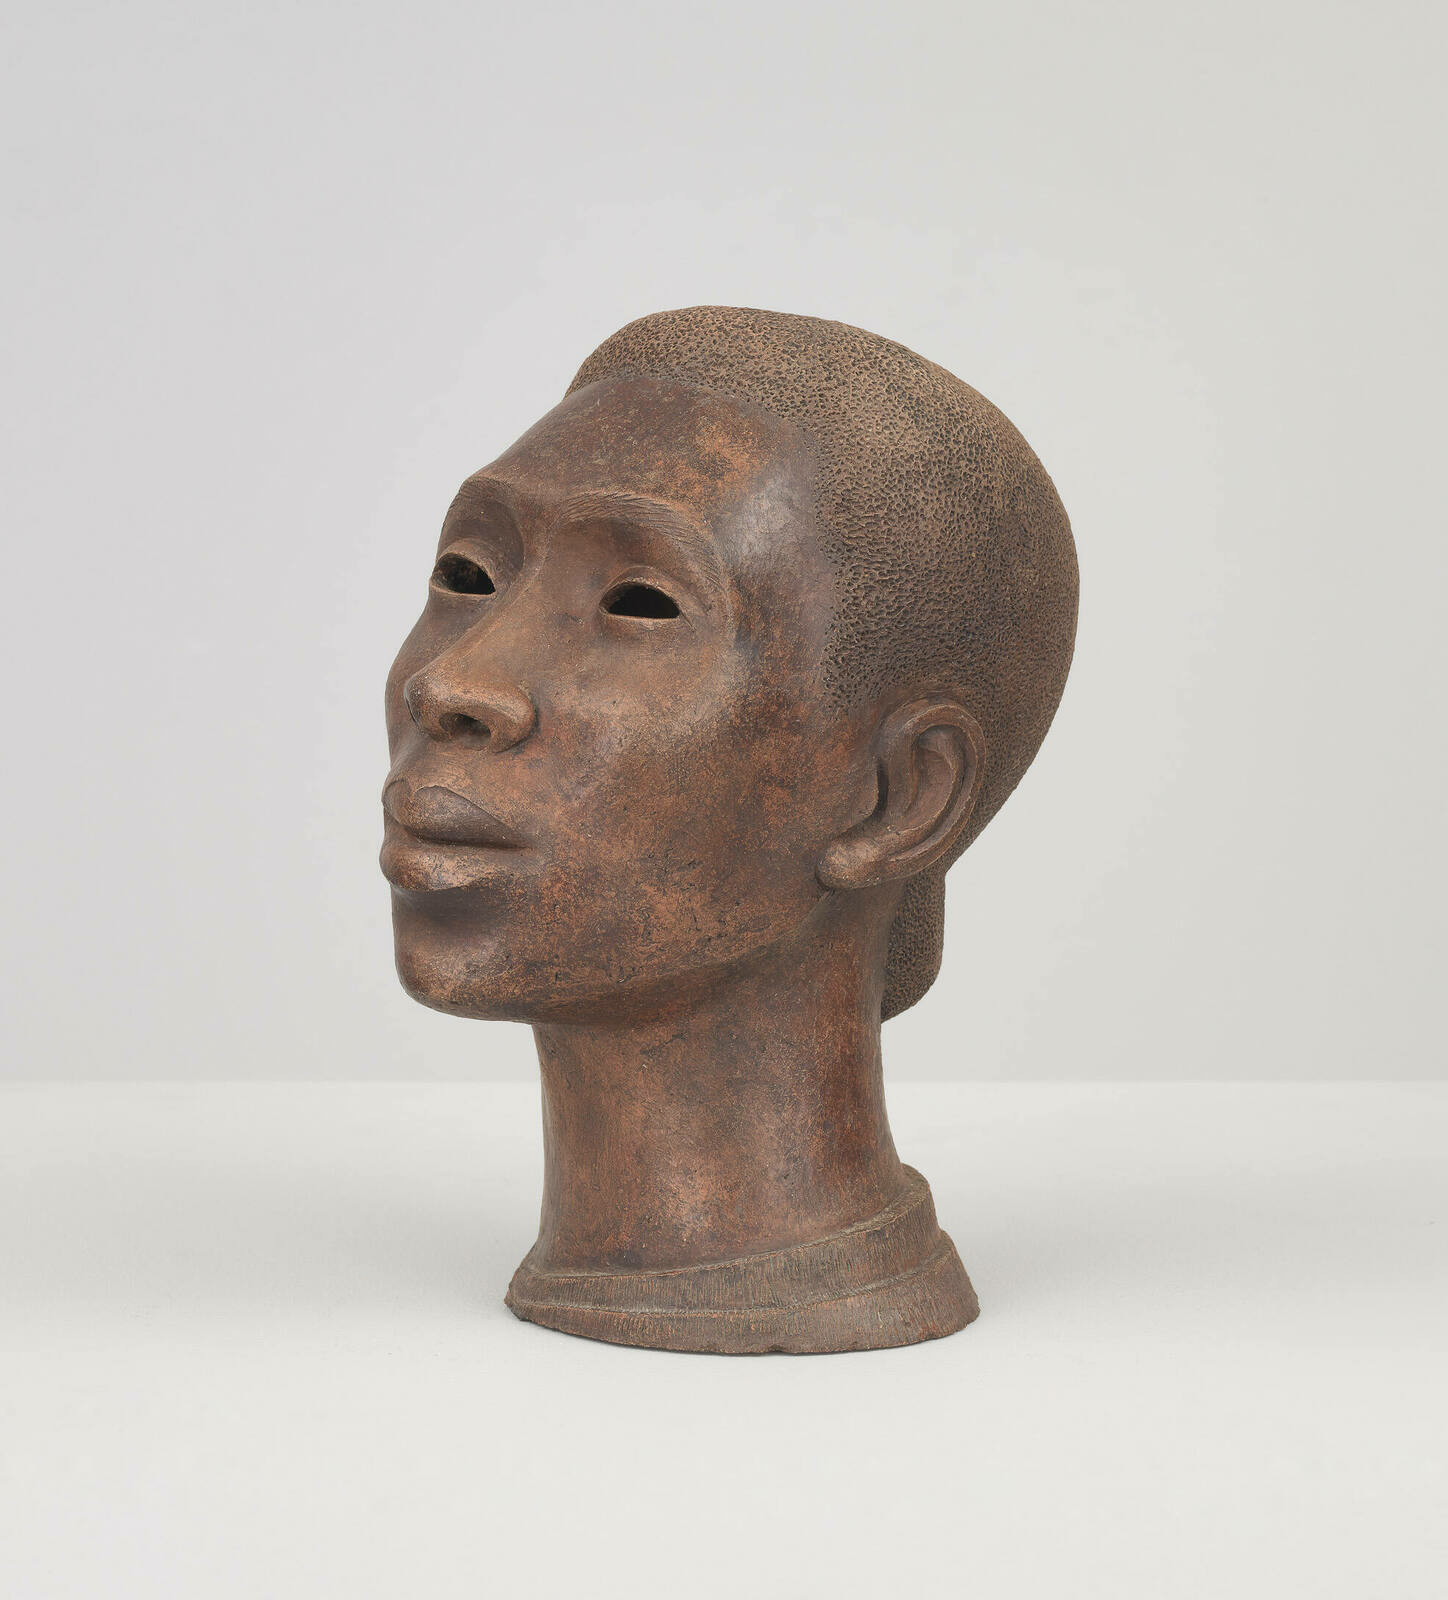 A portrait bust of a Black woman, her face lifted slightly towards the sky